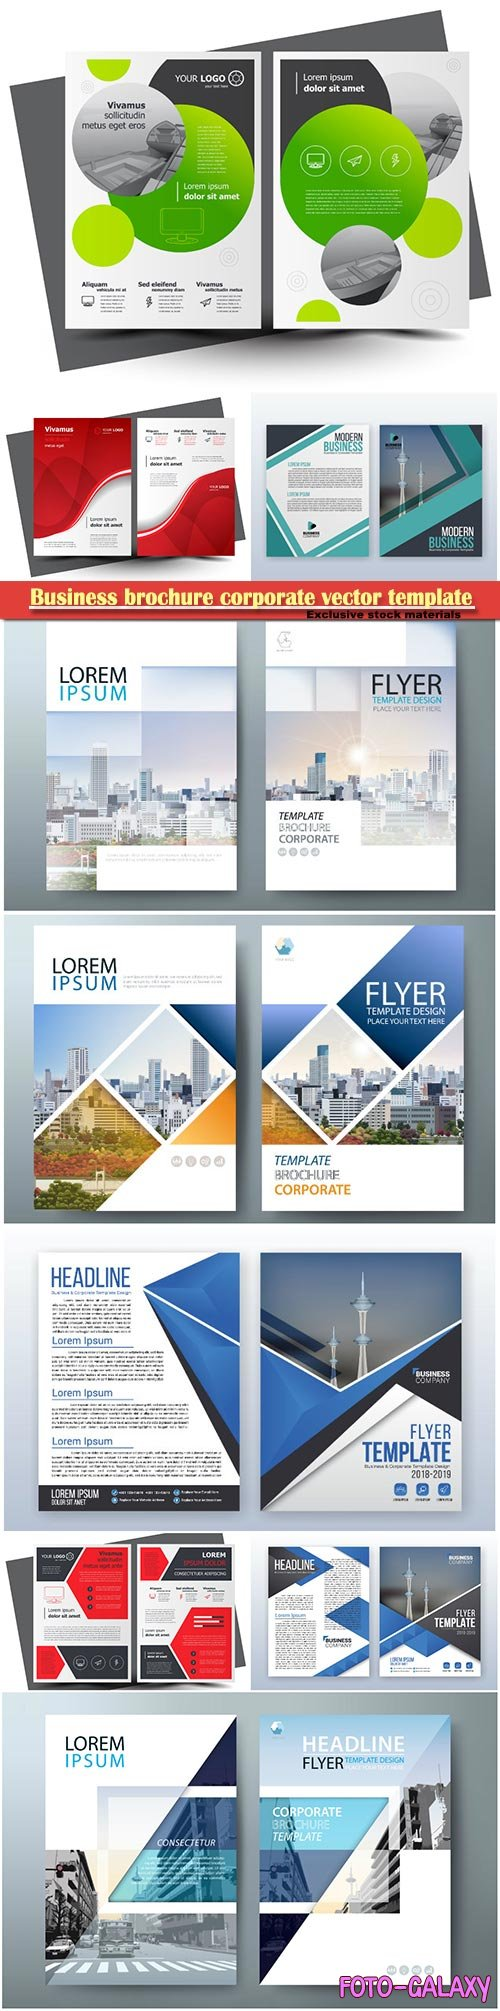 Business brochure corporate vector template, magazine flyer mockup # 12